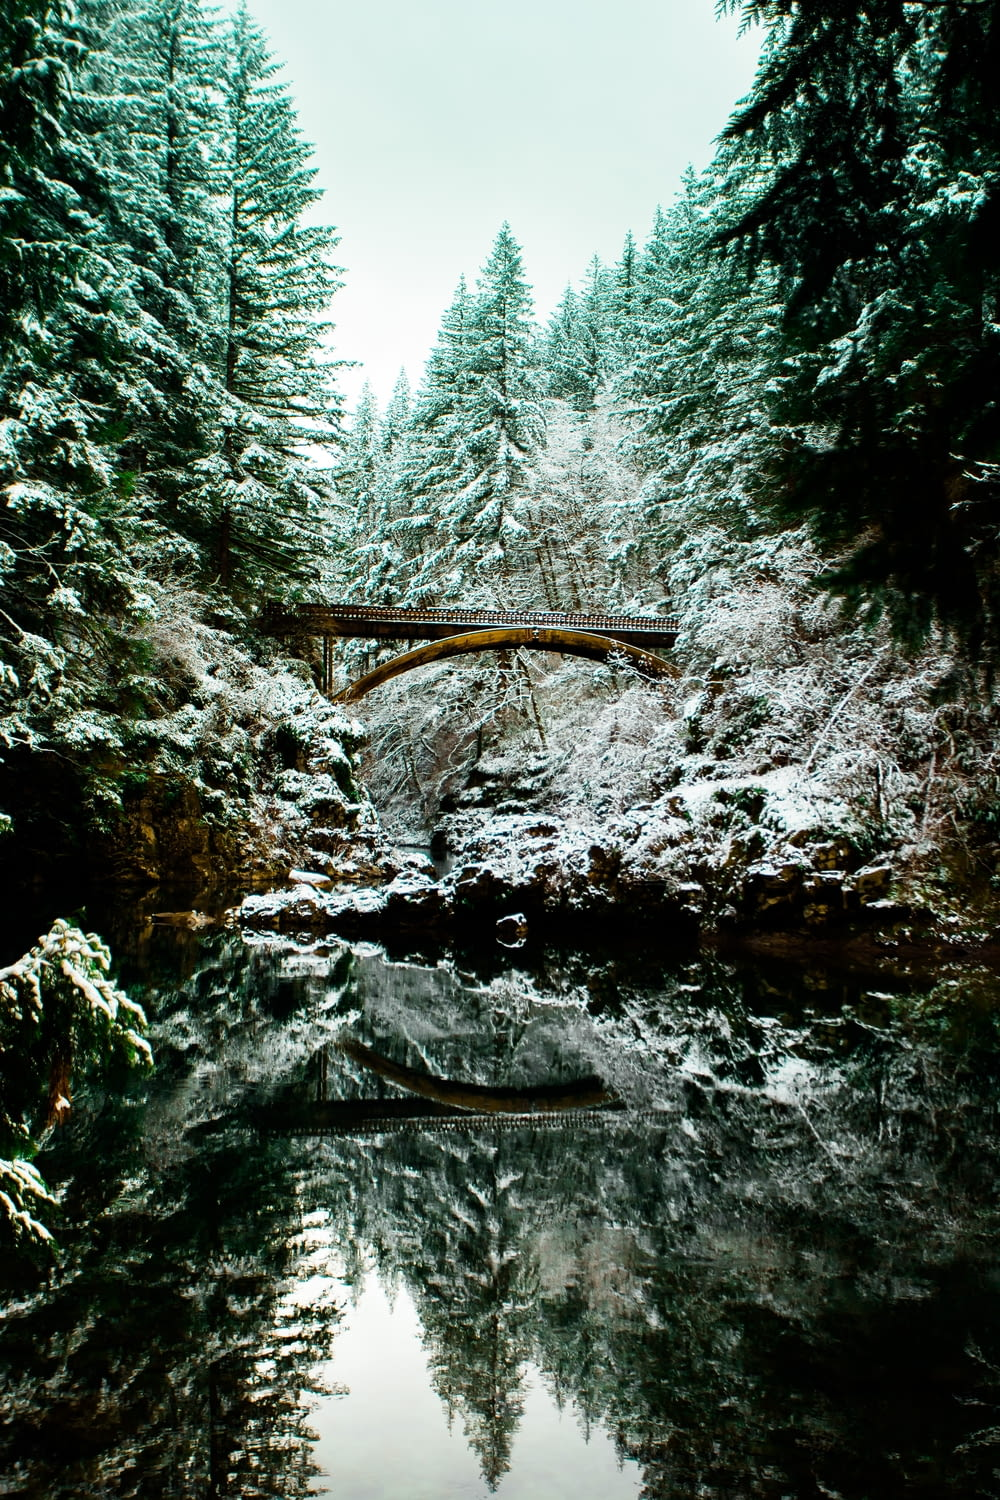 bridge on body of water between pine trees low-angle photography